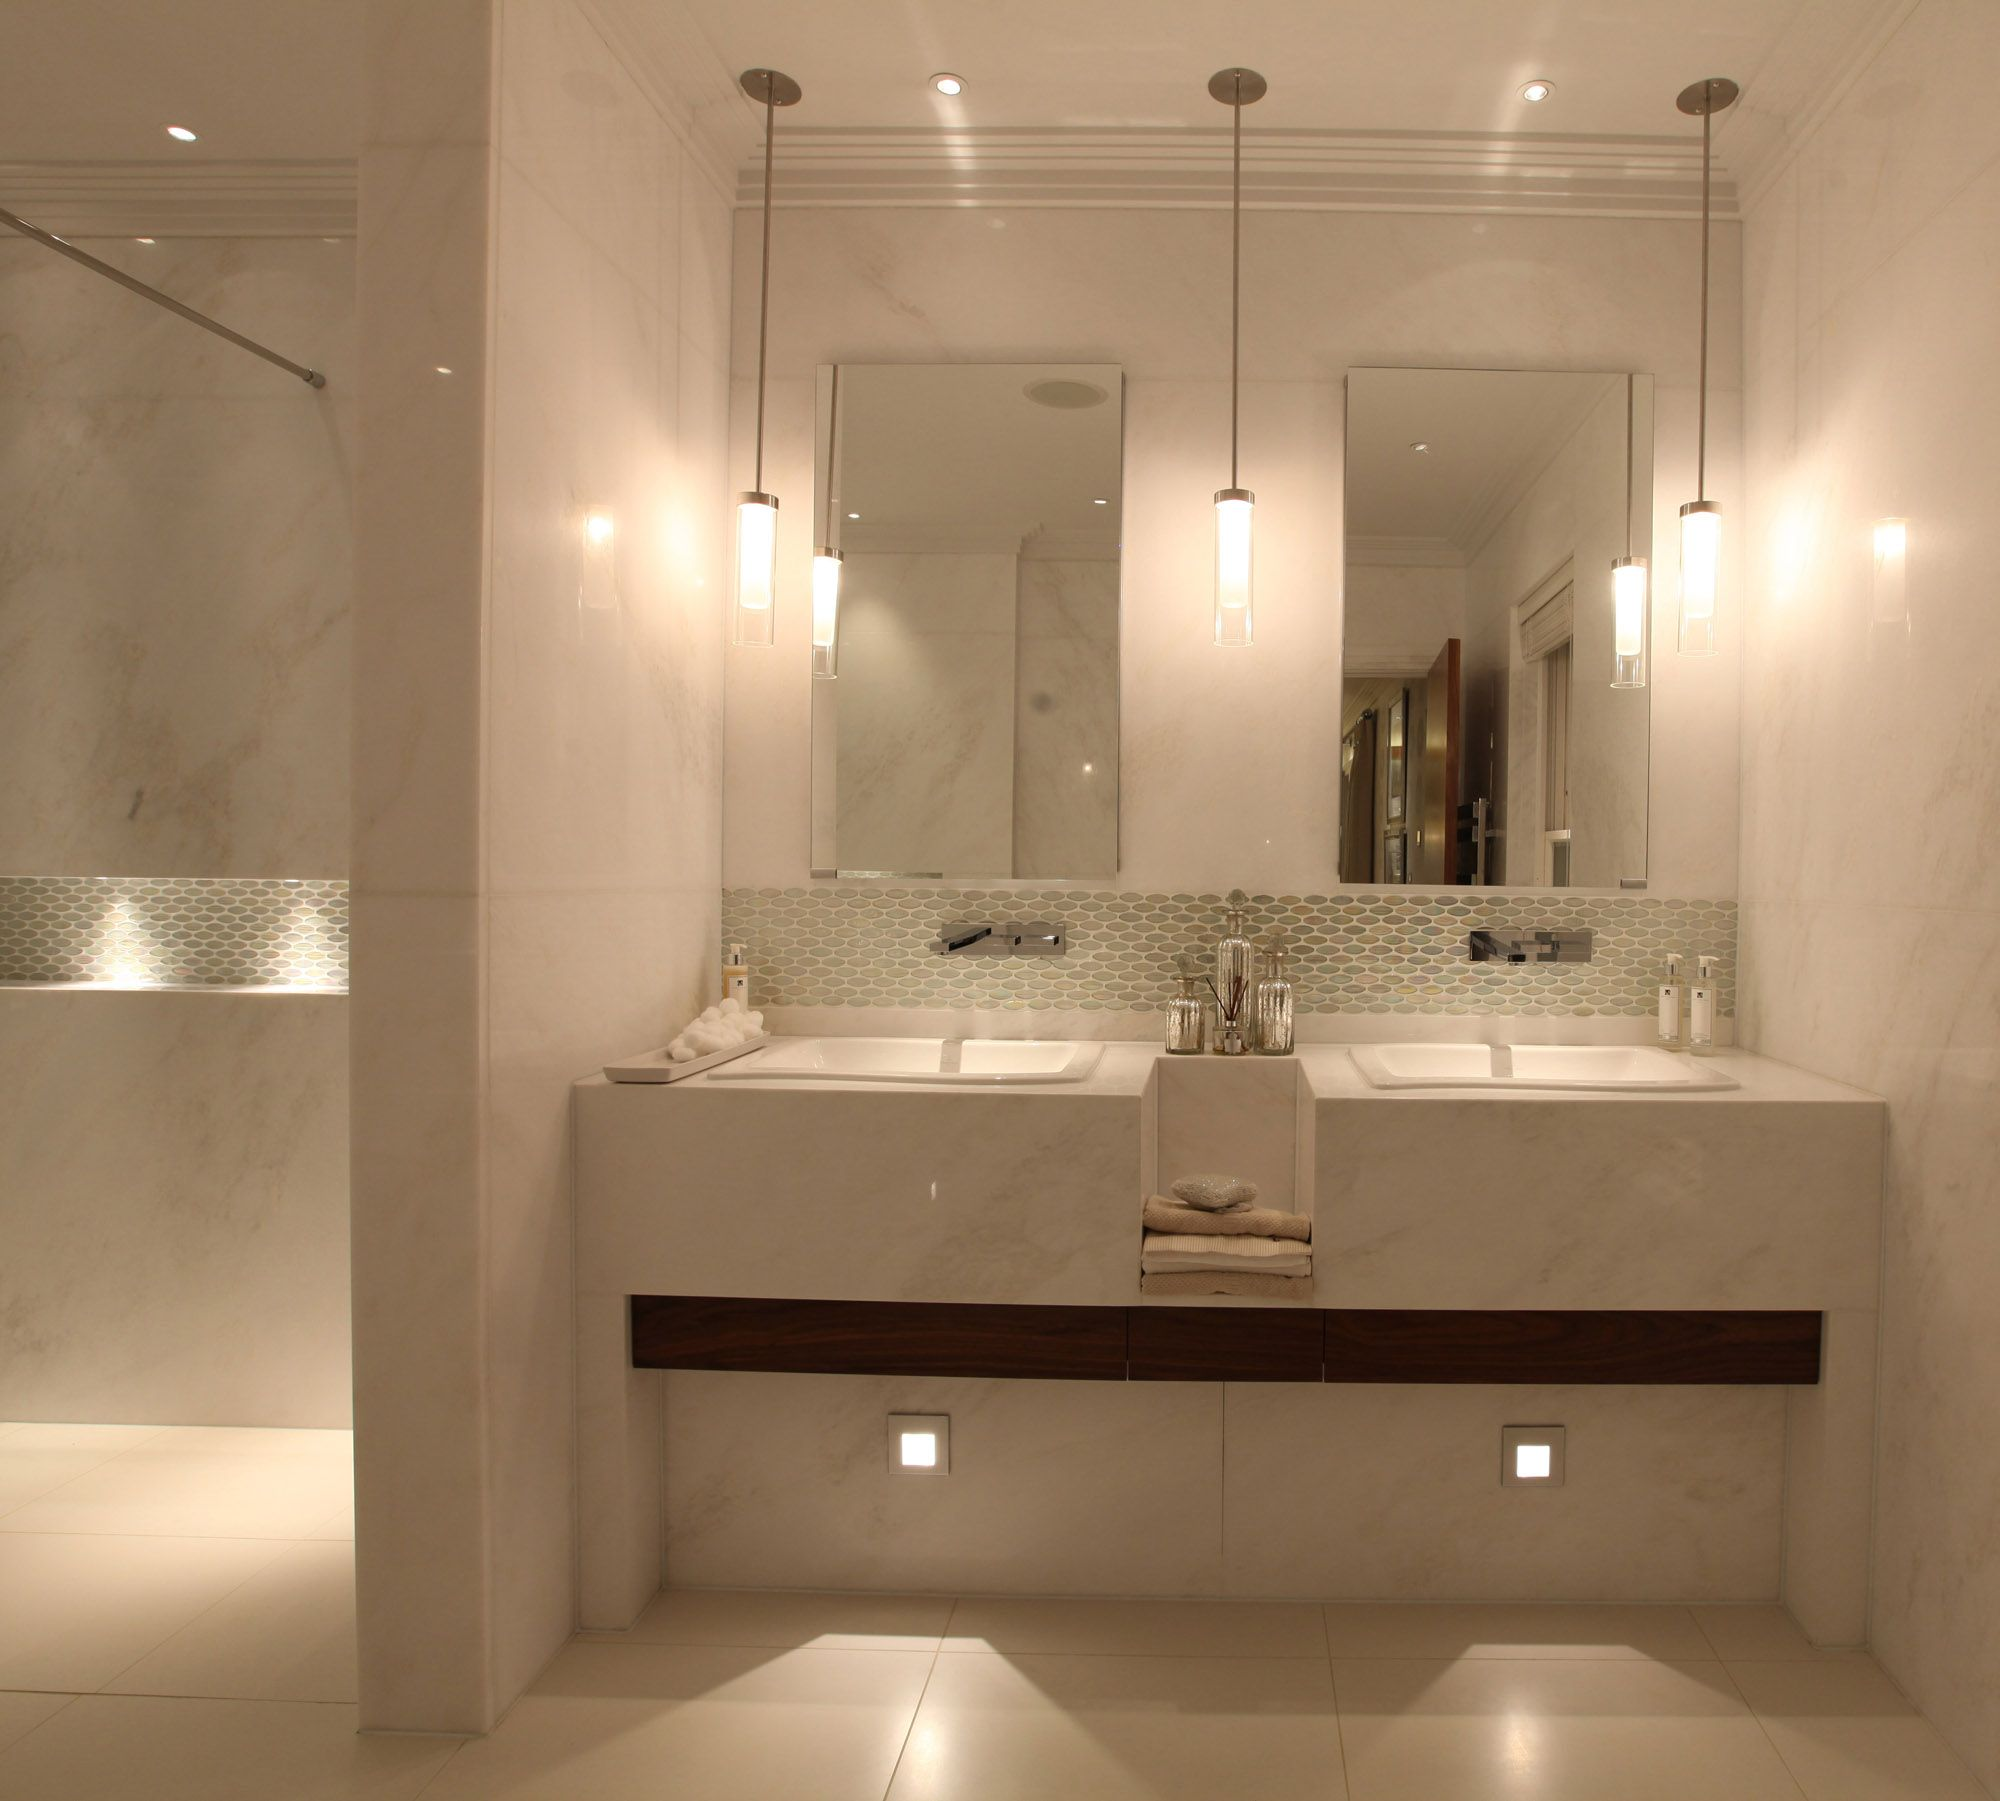 50+ Bathroom Lighting Project Ideas And Designs